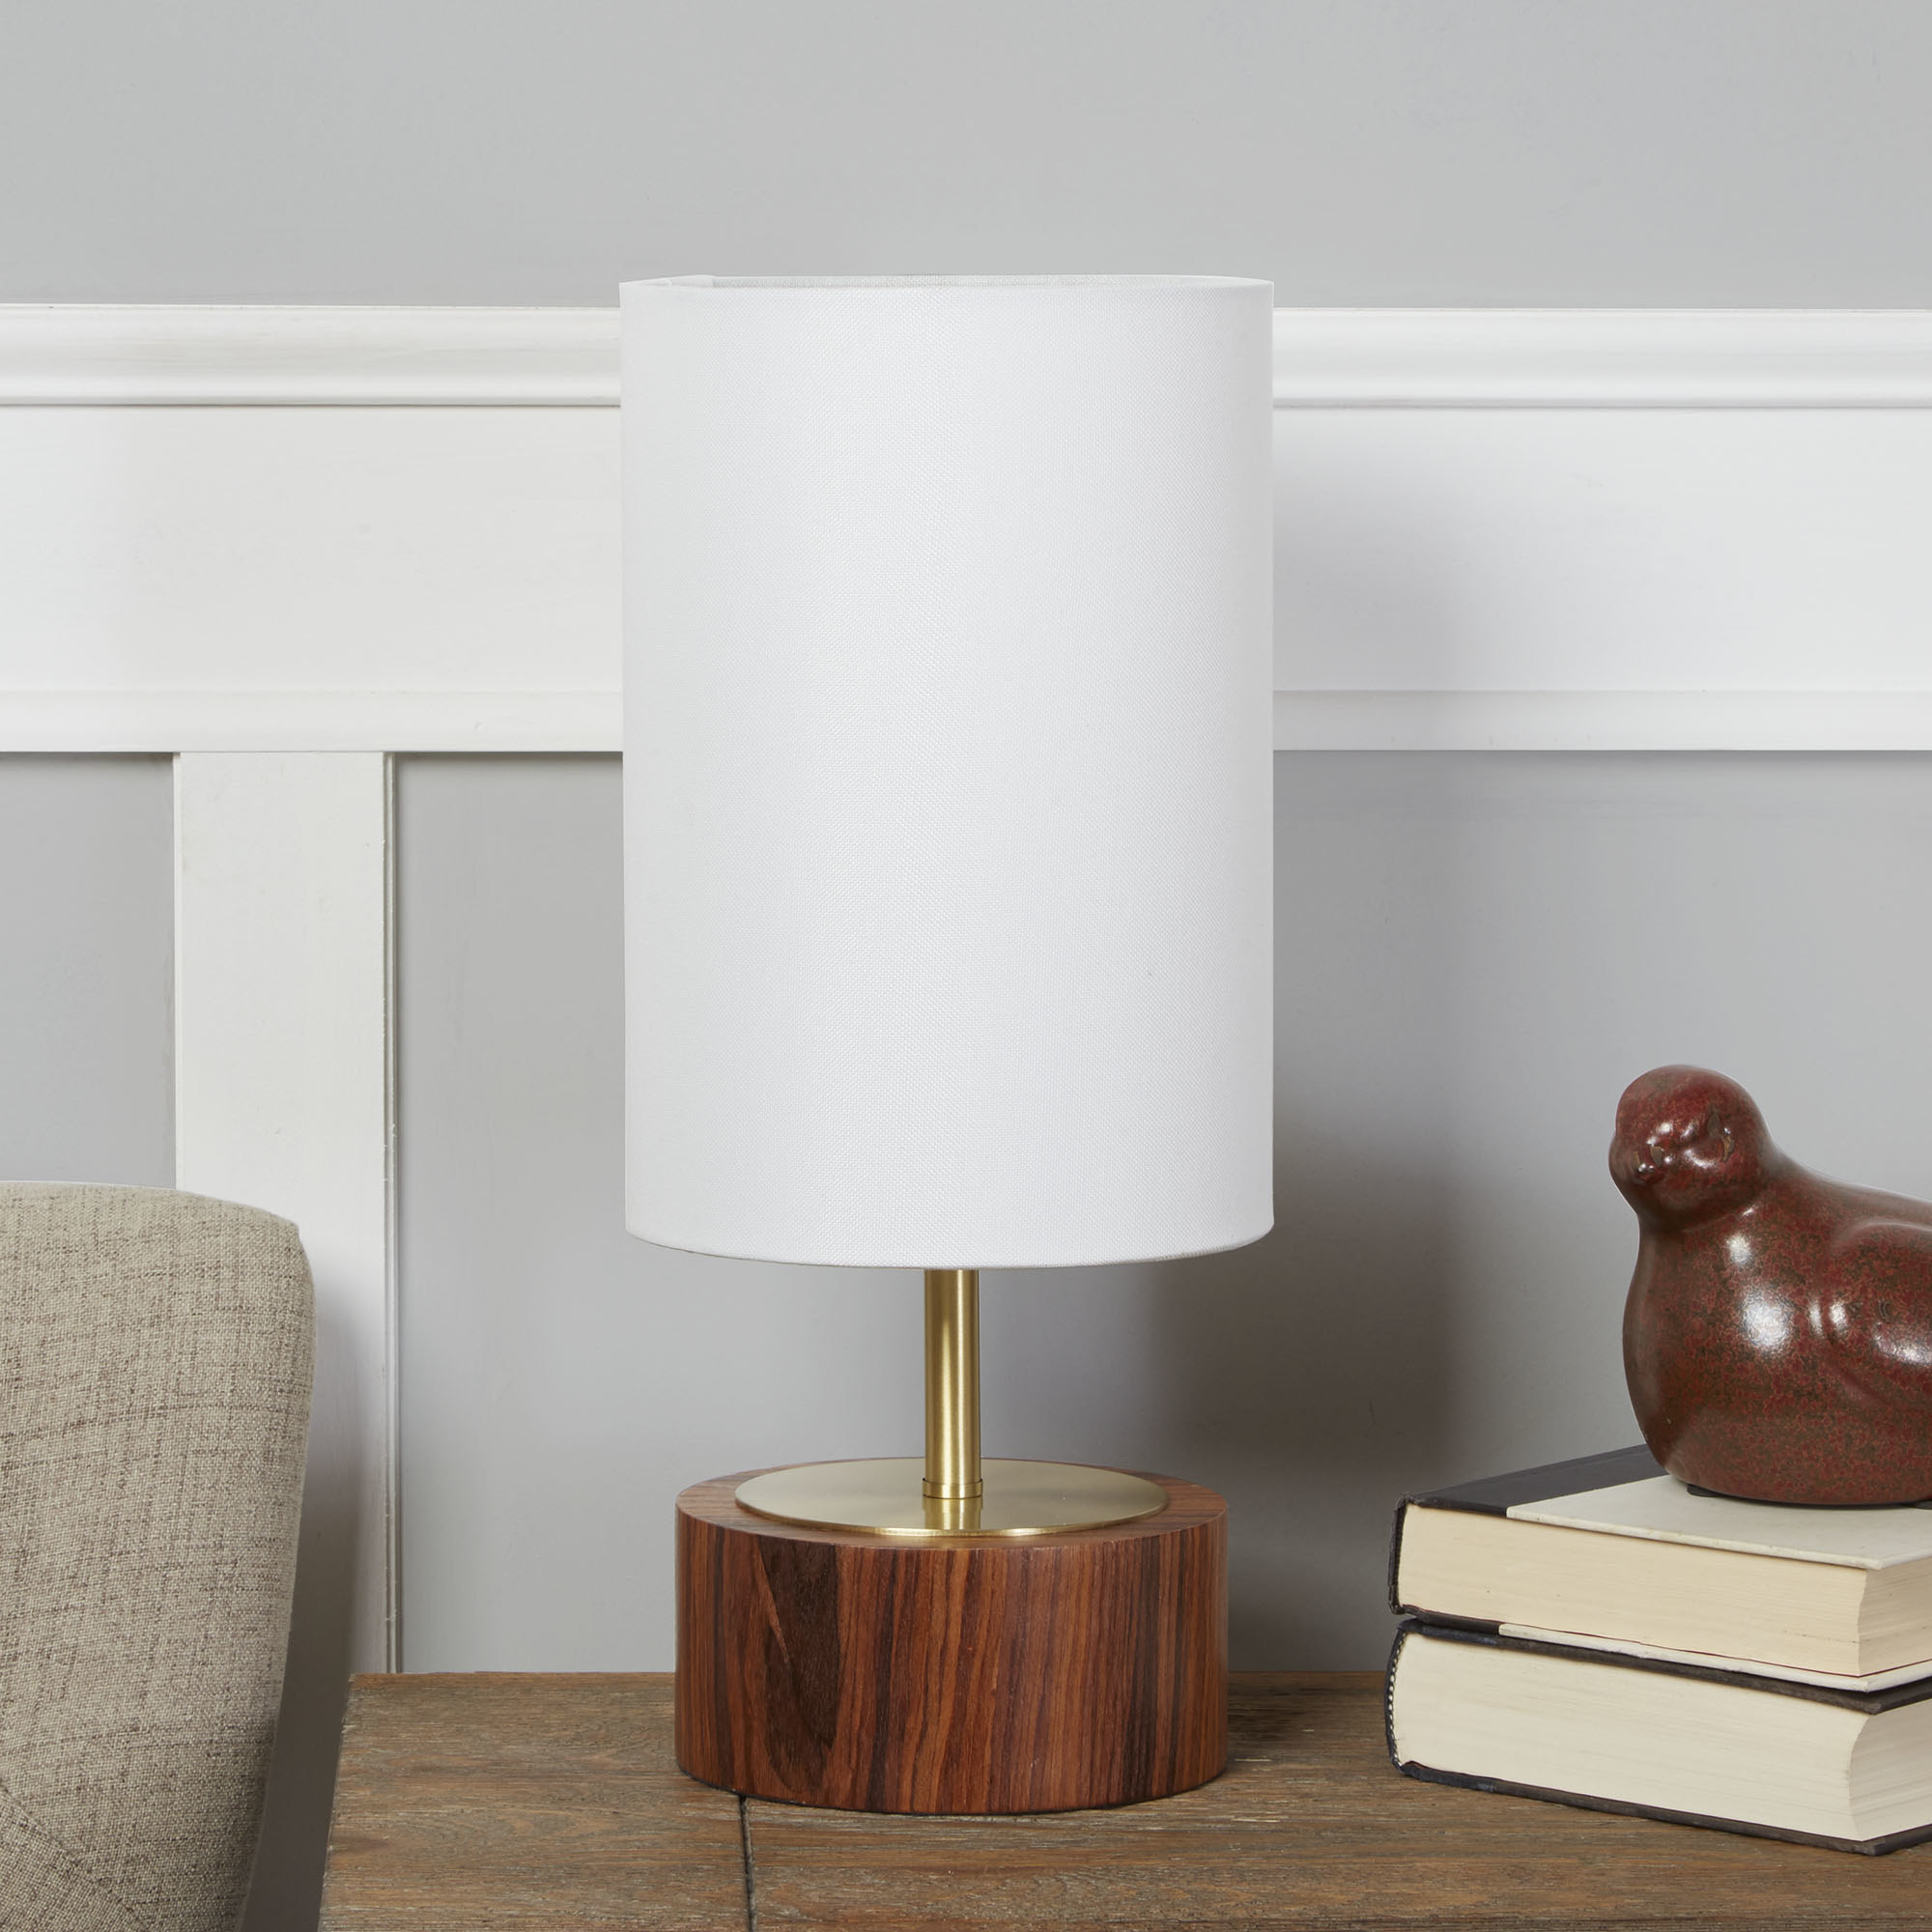 the lamp with an oak base and white shade